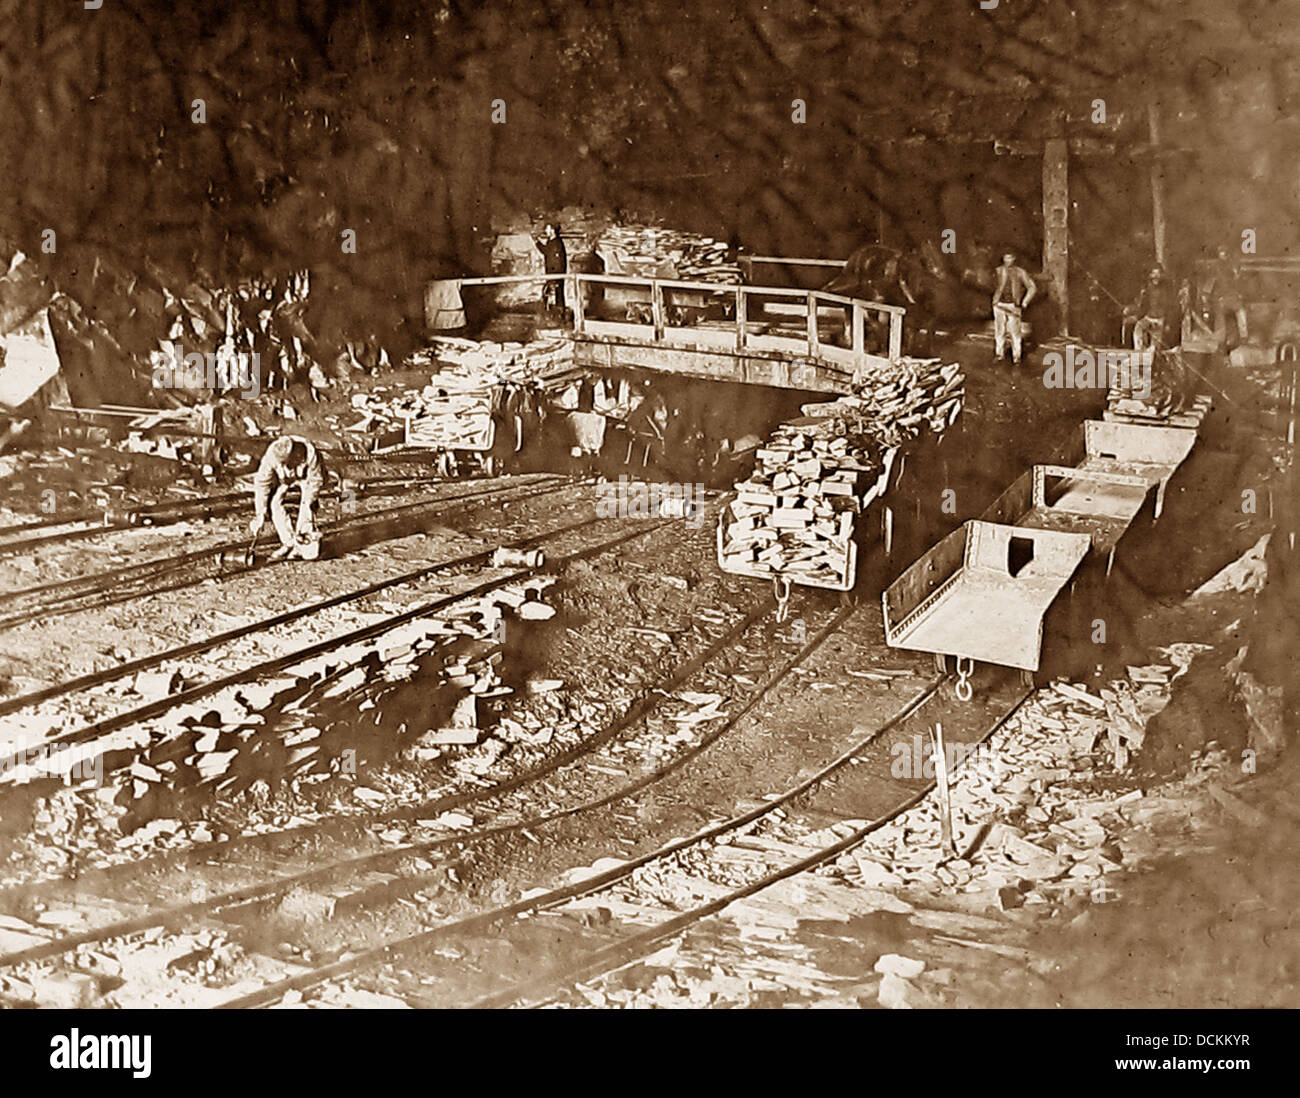 North Wales Llechwedd Slate Quarry / Mine Victorian period Stock Photo